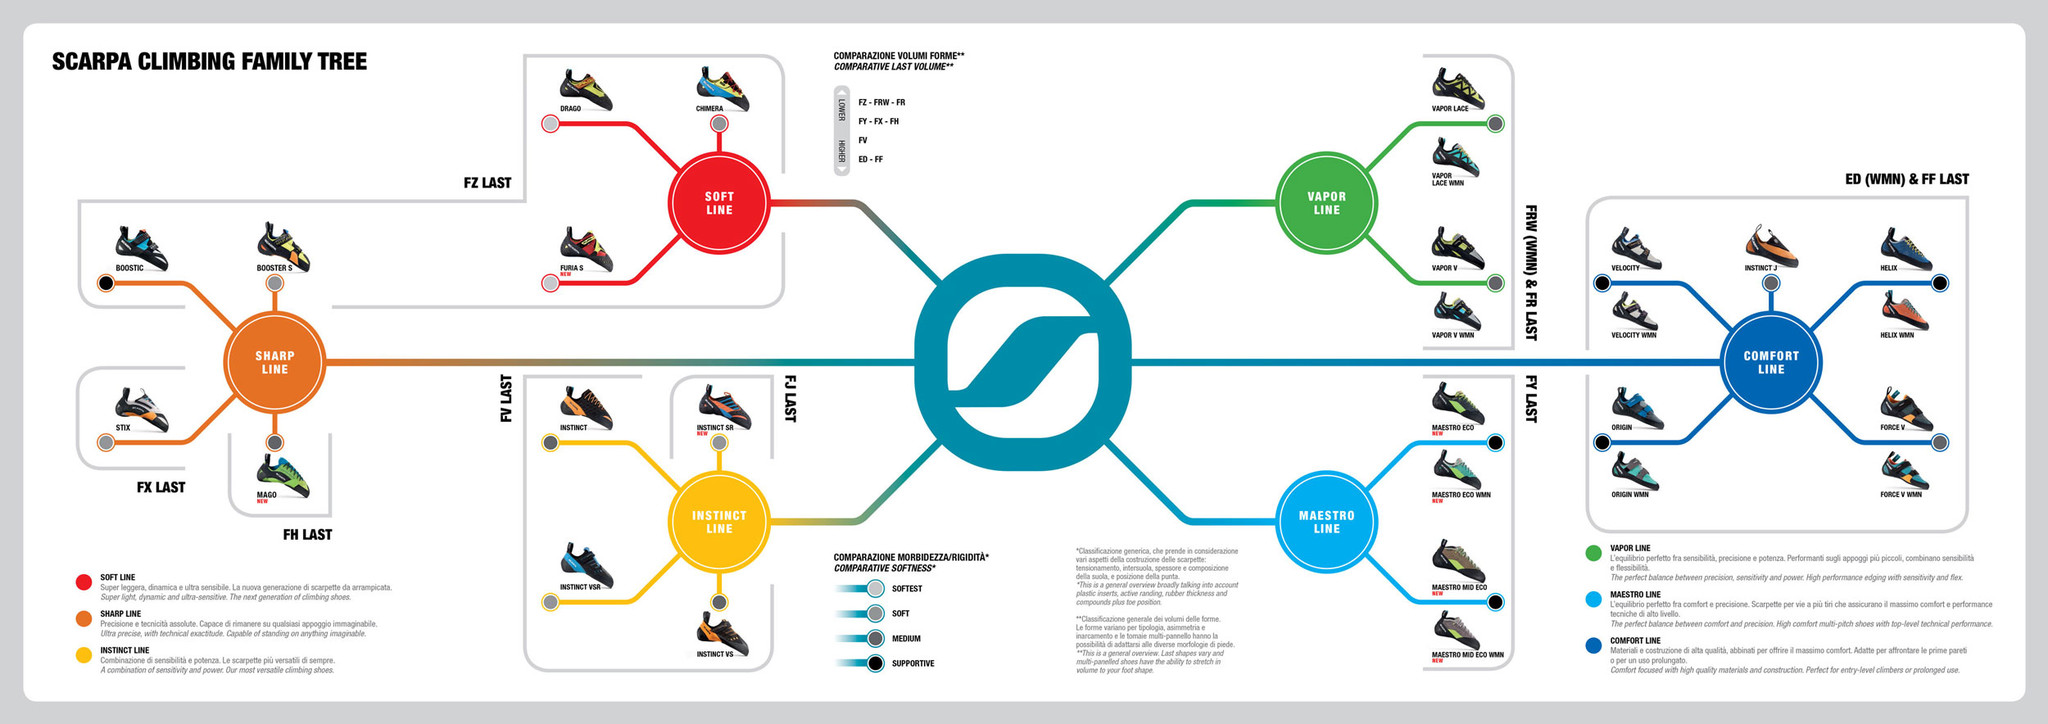 Scarpa Climbing Shoe Family Tree